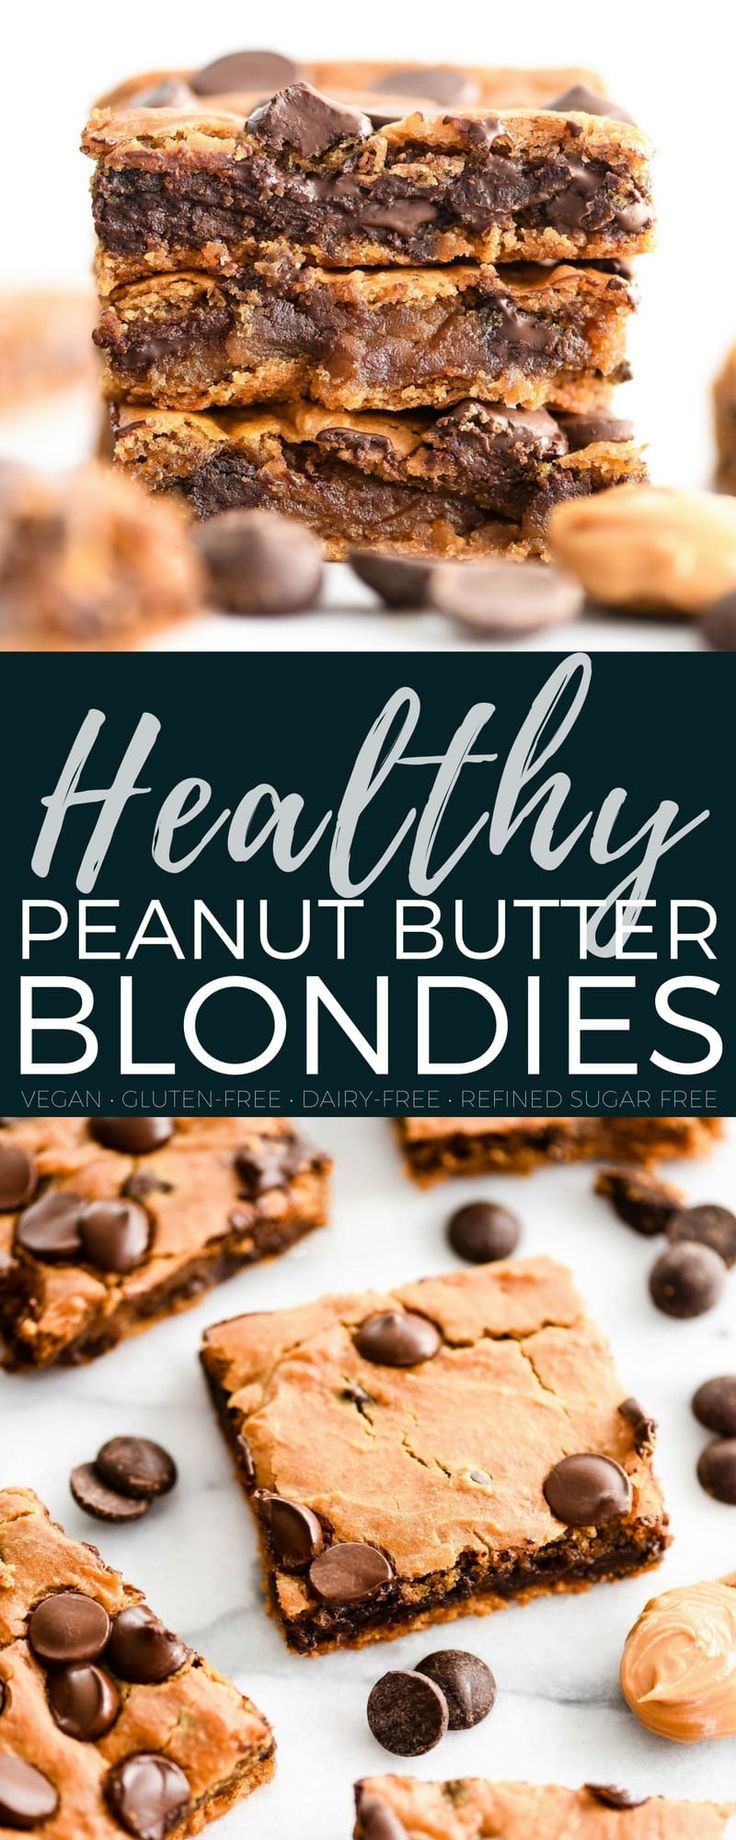 1 15 oz can chickpeas (garbanzo beans), rinsed and drained ½ cup peanut butter ¼ cup honey can substitute maple syrup for a vegan option ¼ cup coconut sugar 1 TBS almond milk 2 tsp vanilla ½ tsp salt ½ tsp baking powder ¼ tsp baking soda ½ cup chocolate chips